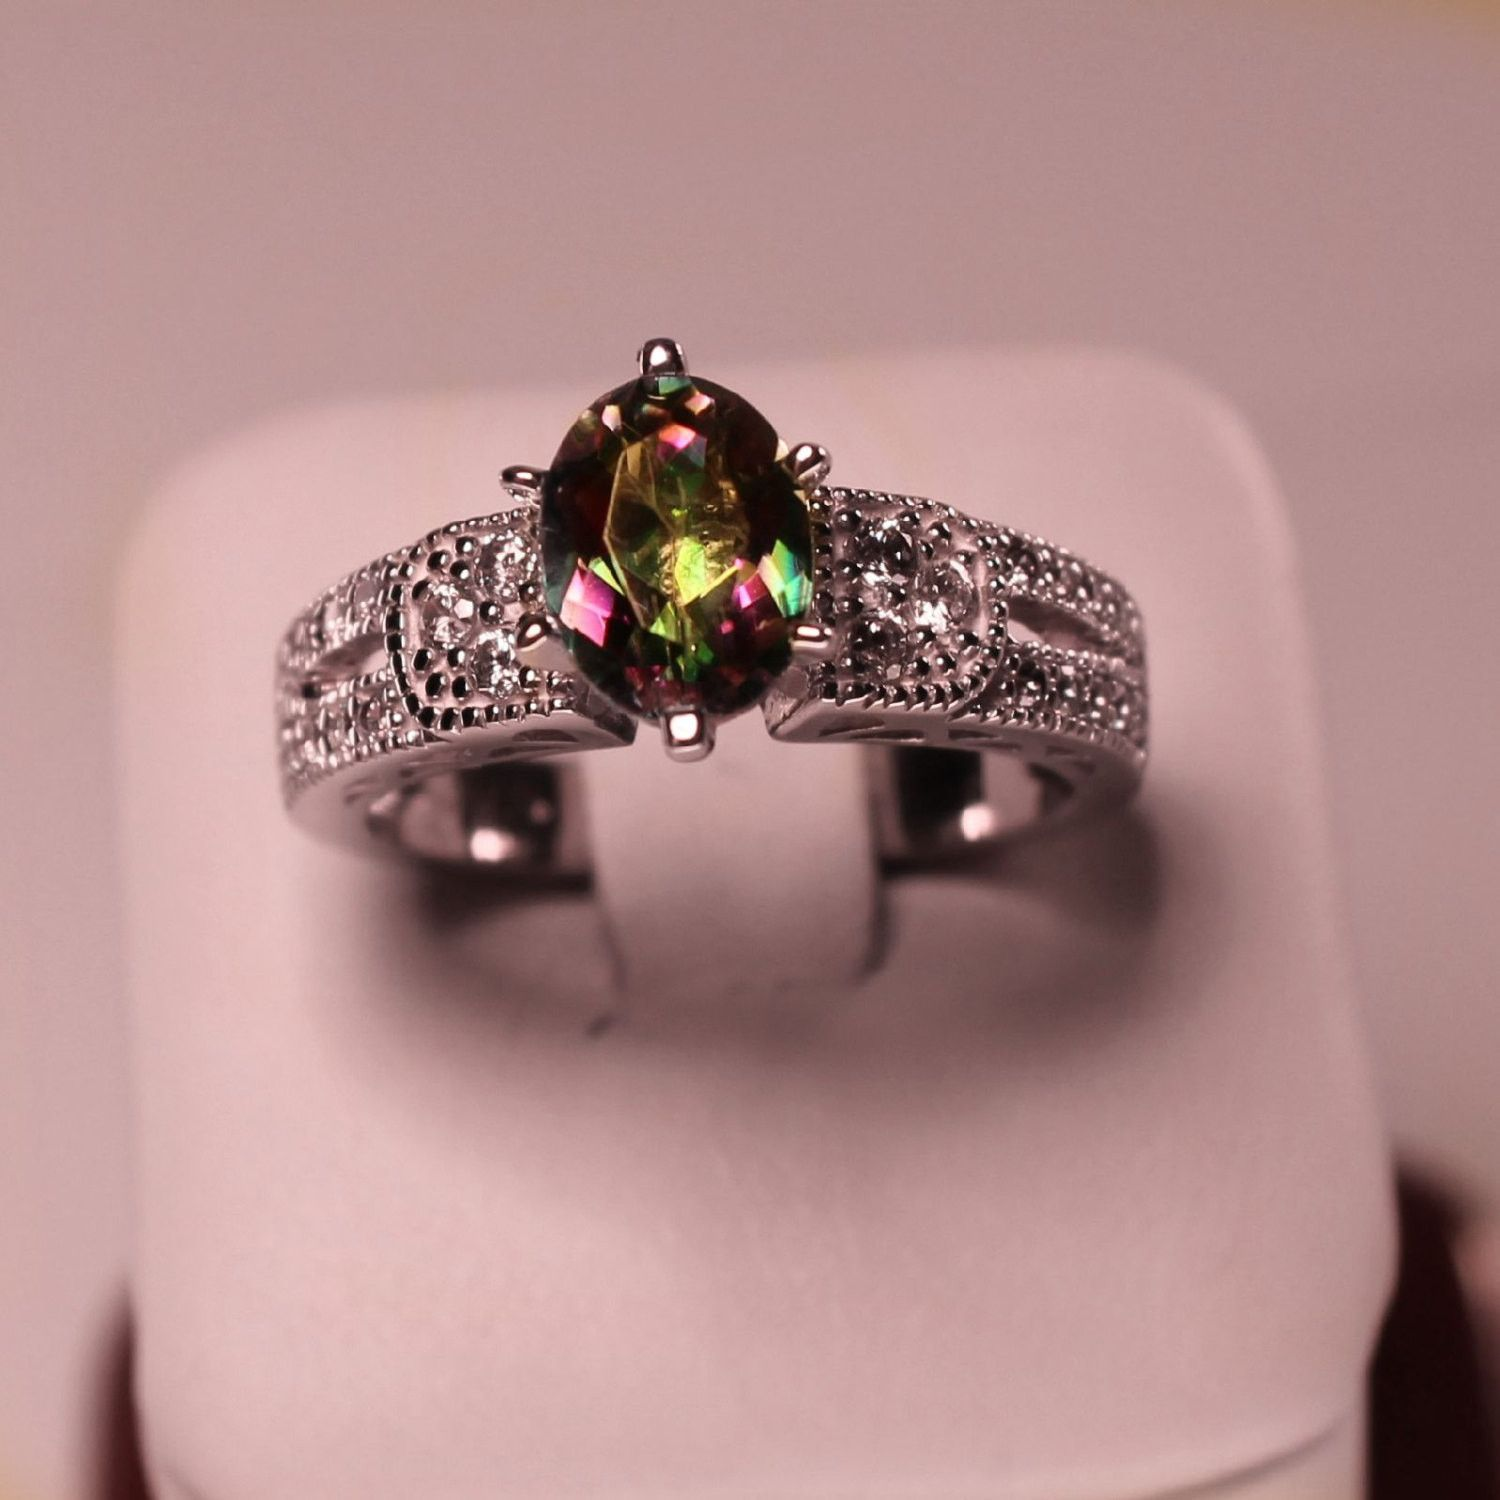 Maleficent Ring - Art Deco Sterling Silver and Oval Mystic Topaz ...